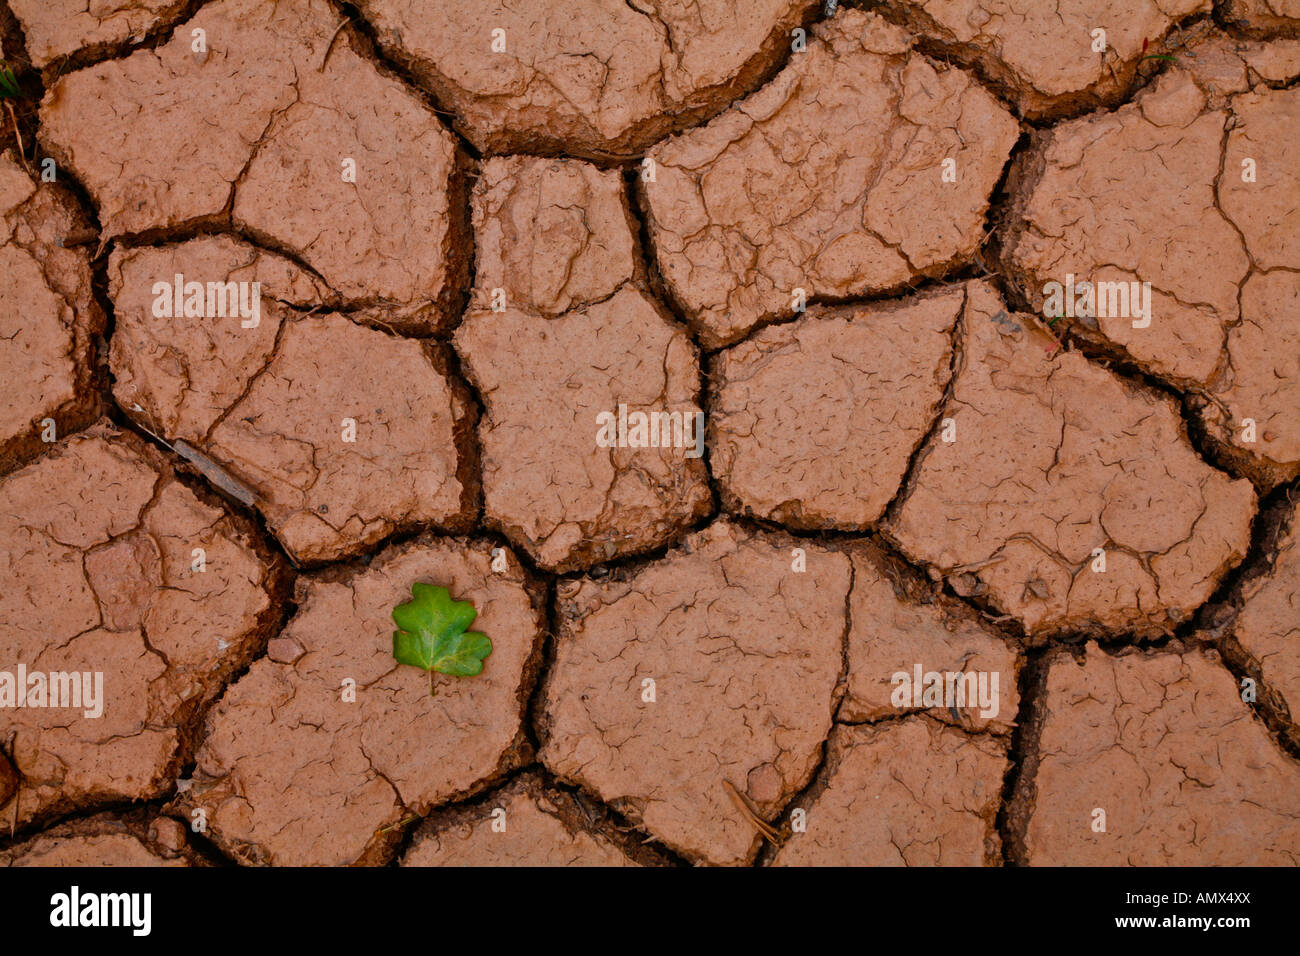 Single green leaf juxtaposed with arid, cracked, desert ...